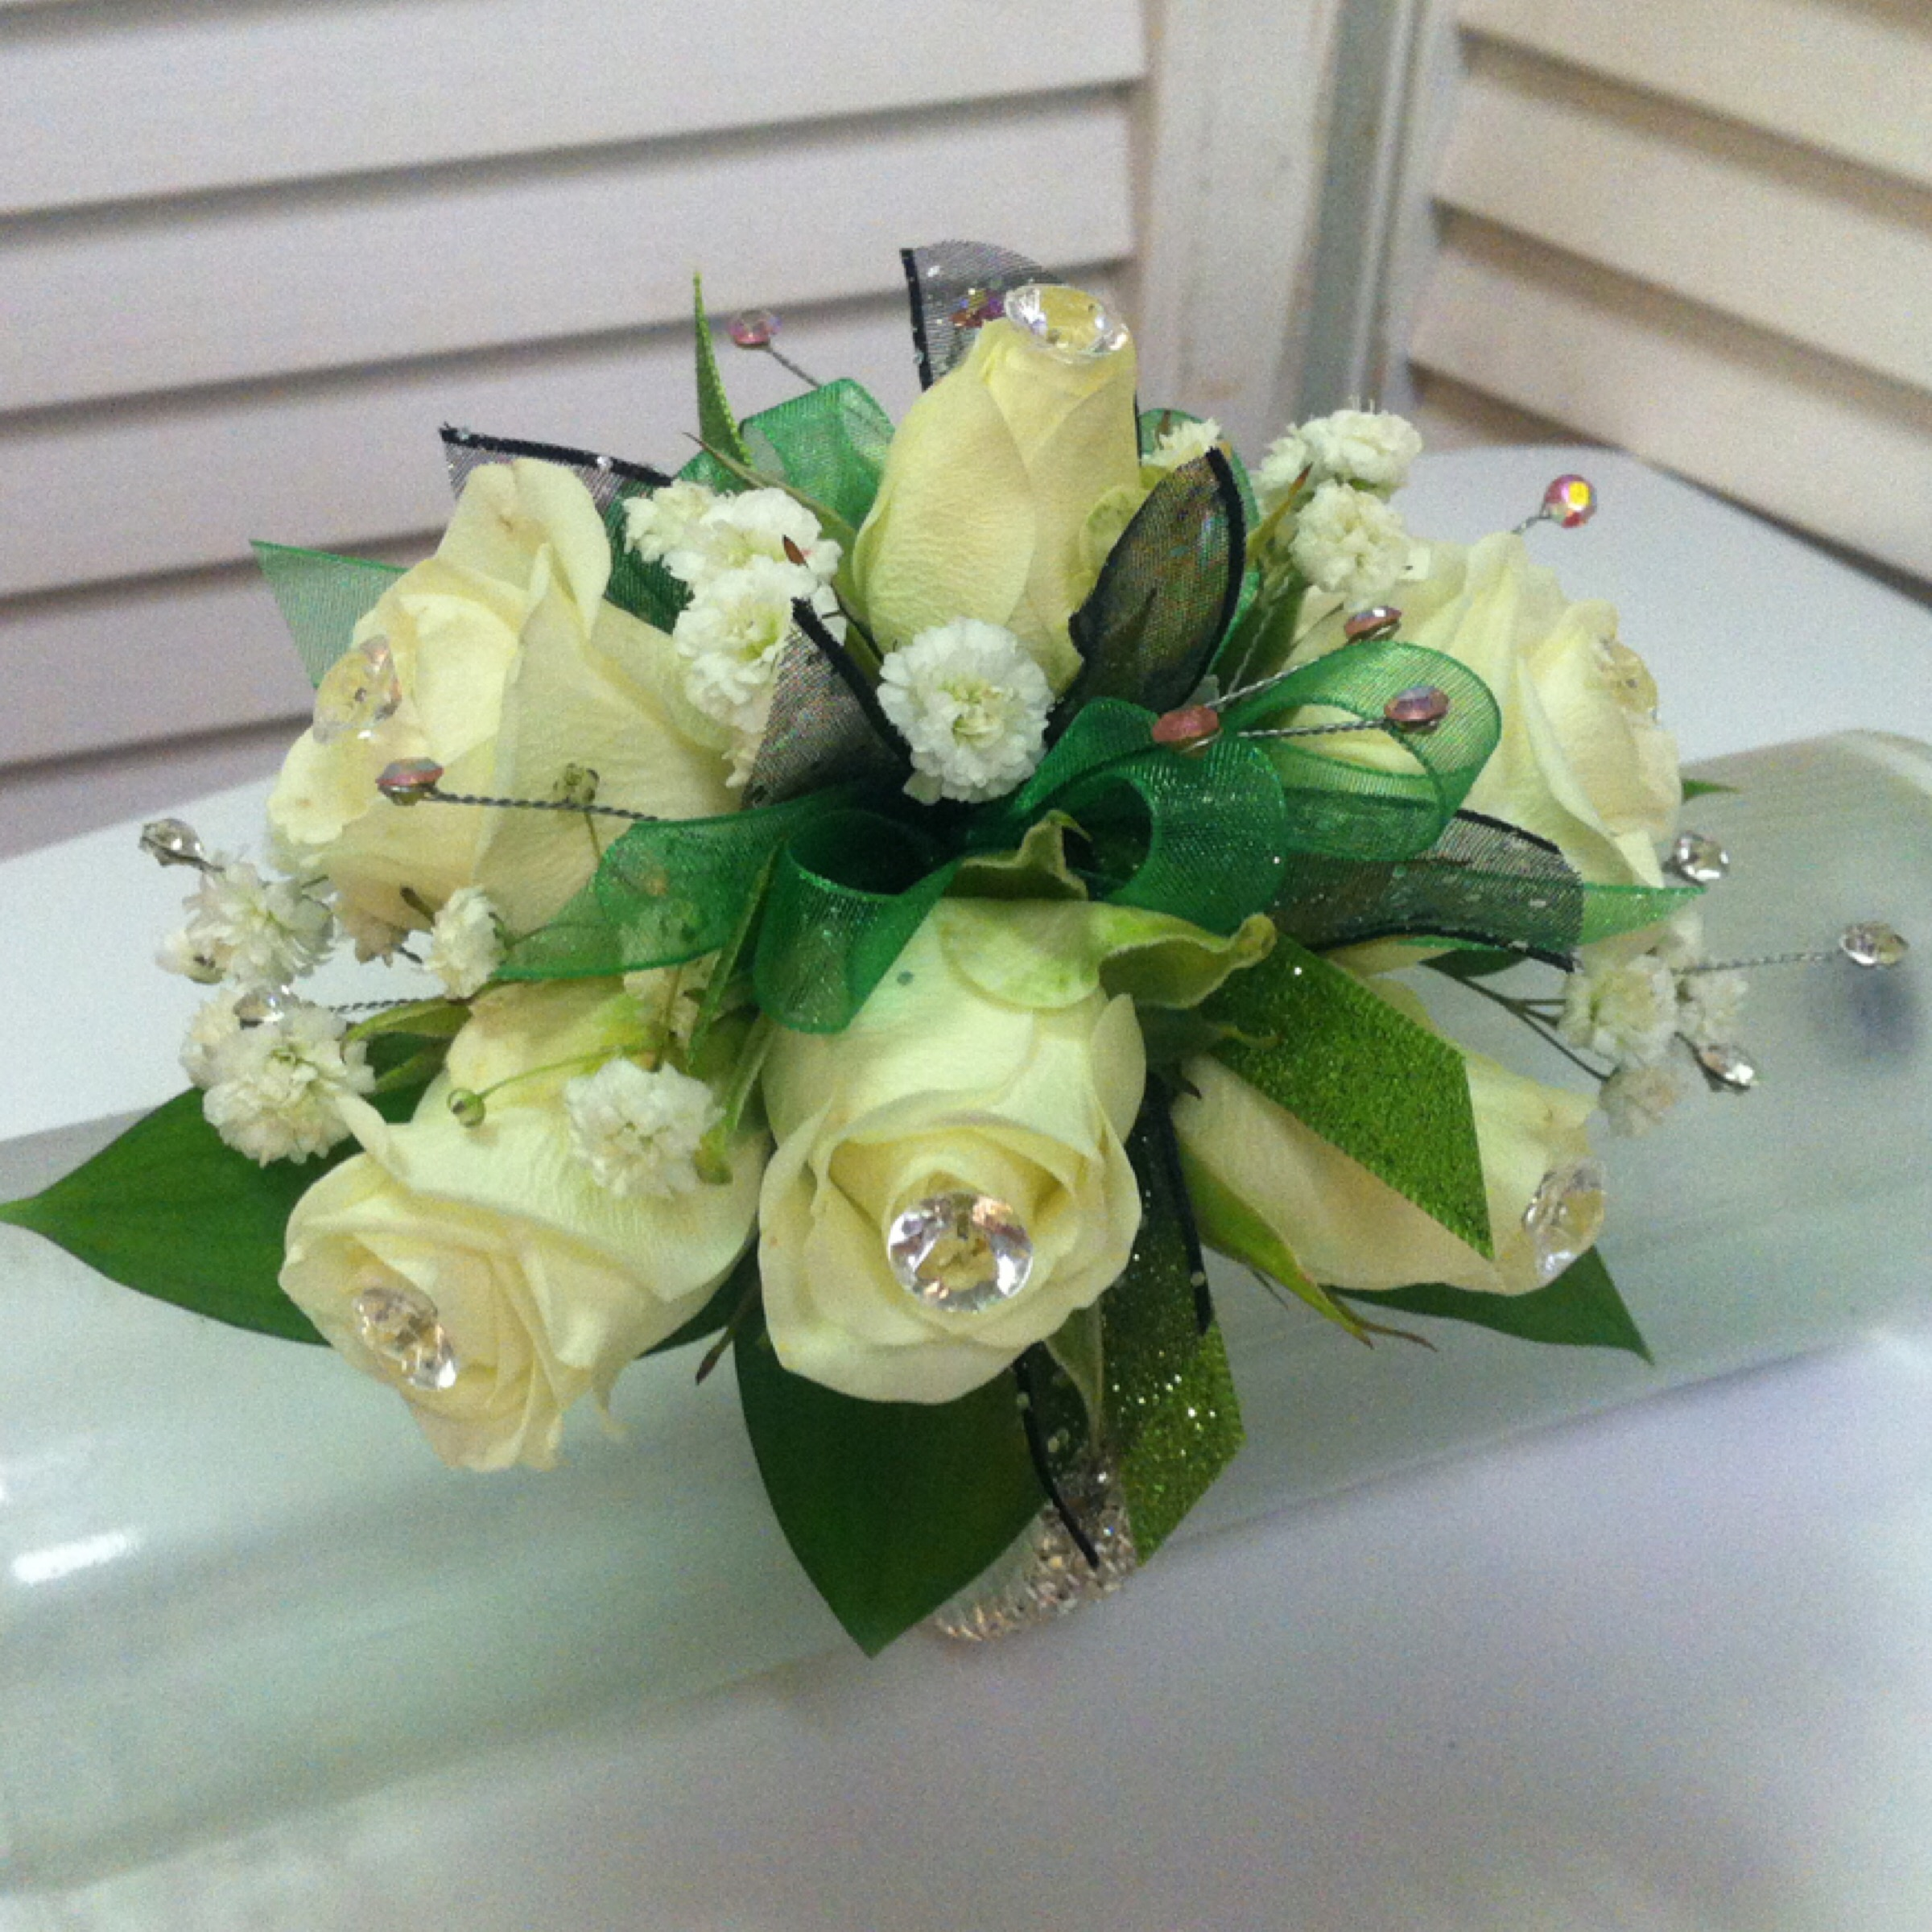 Plus Corsage (30) with Extra Flowers (5) and Extra Jewels (5) $40